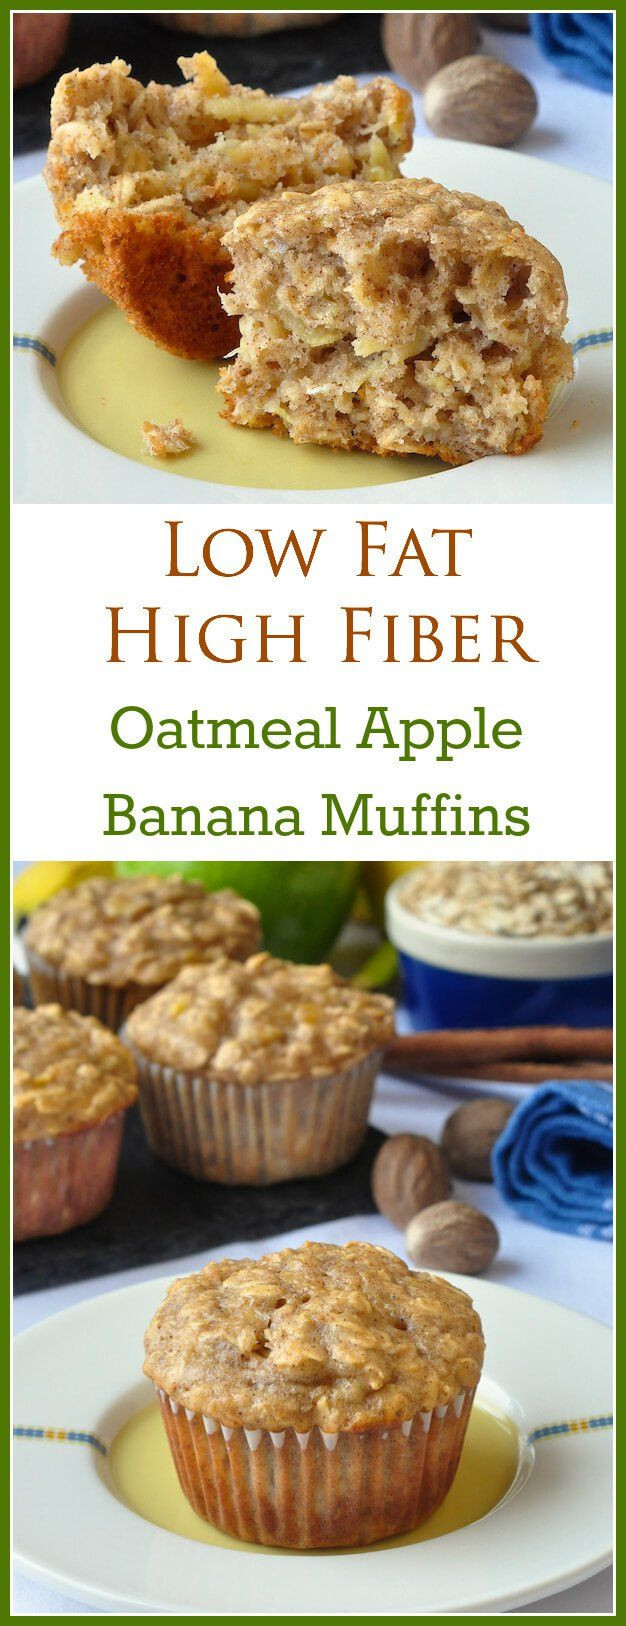 Low Calorie Oatmeal Recipes  26 best images about Make again recipes on Pinterest